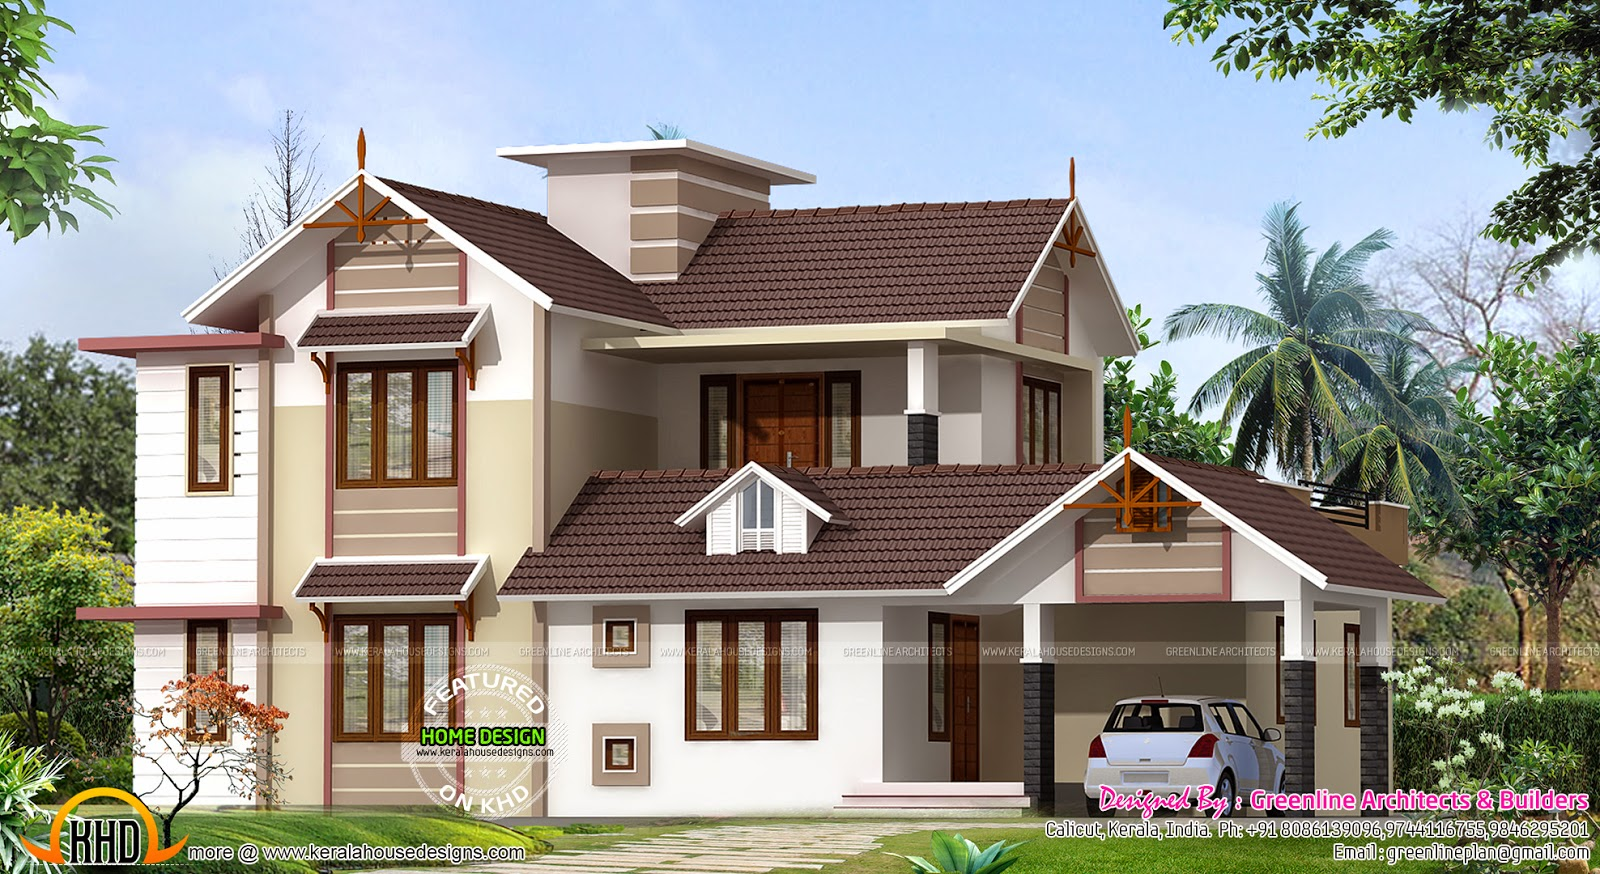 2400 sq ft new house design kerala home design and floor for Designing your new home